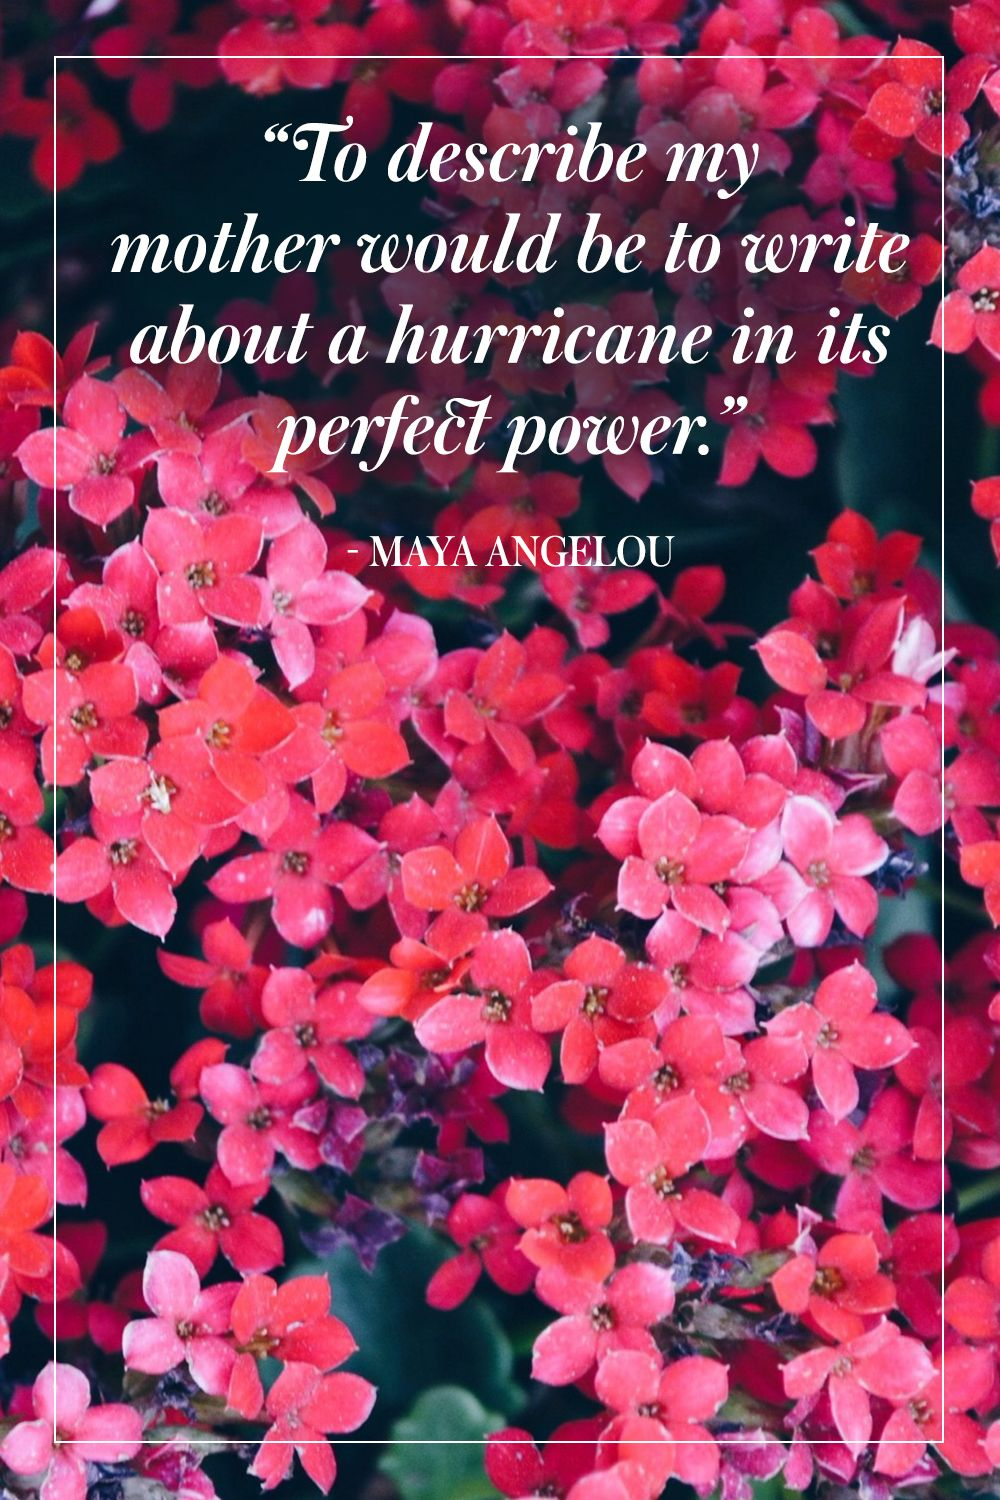 """""""To describe my mother would be to write about a hurricane in its perfect power."""" - Maya Angelou"""